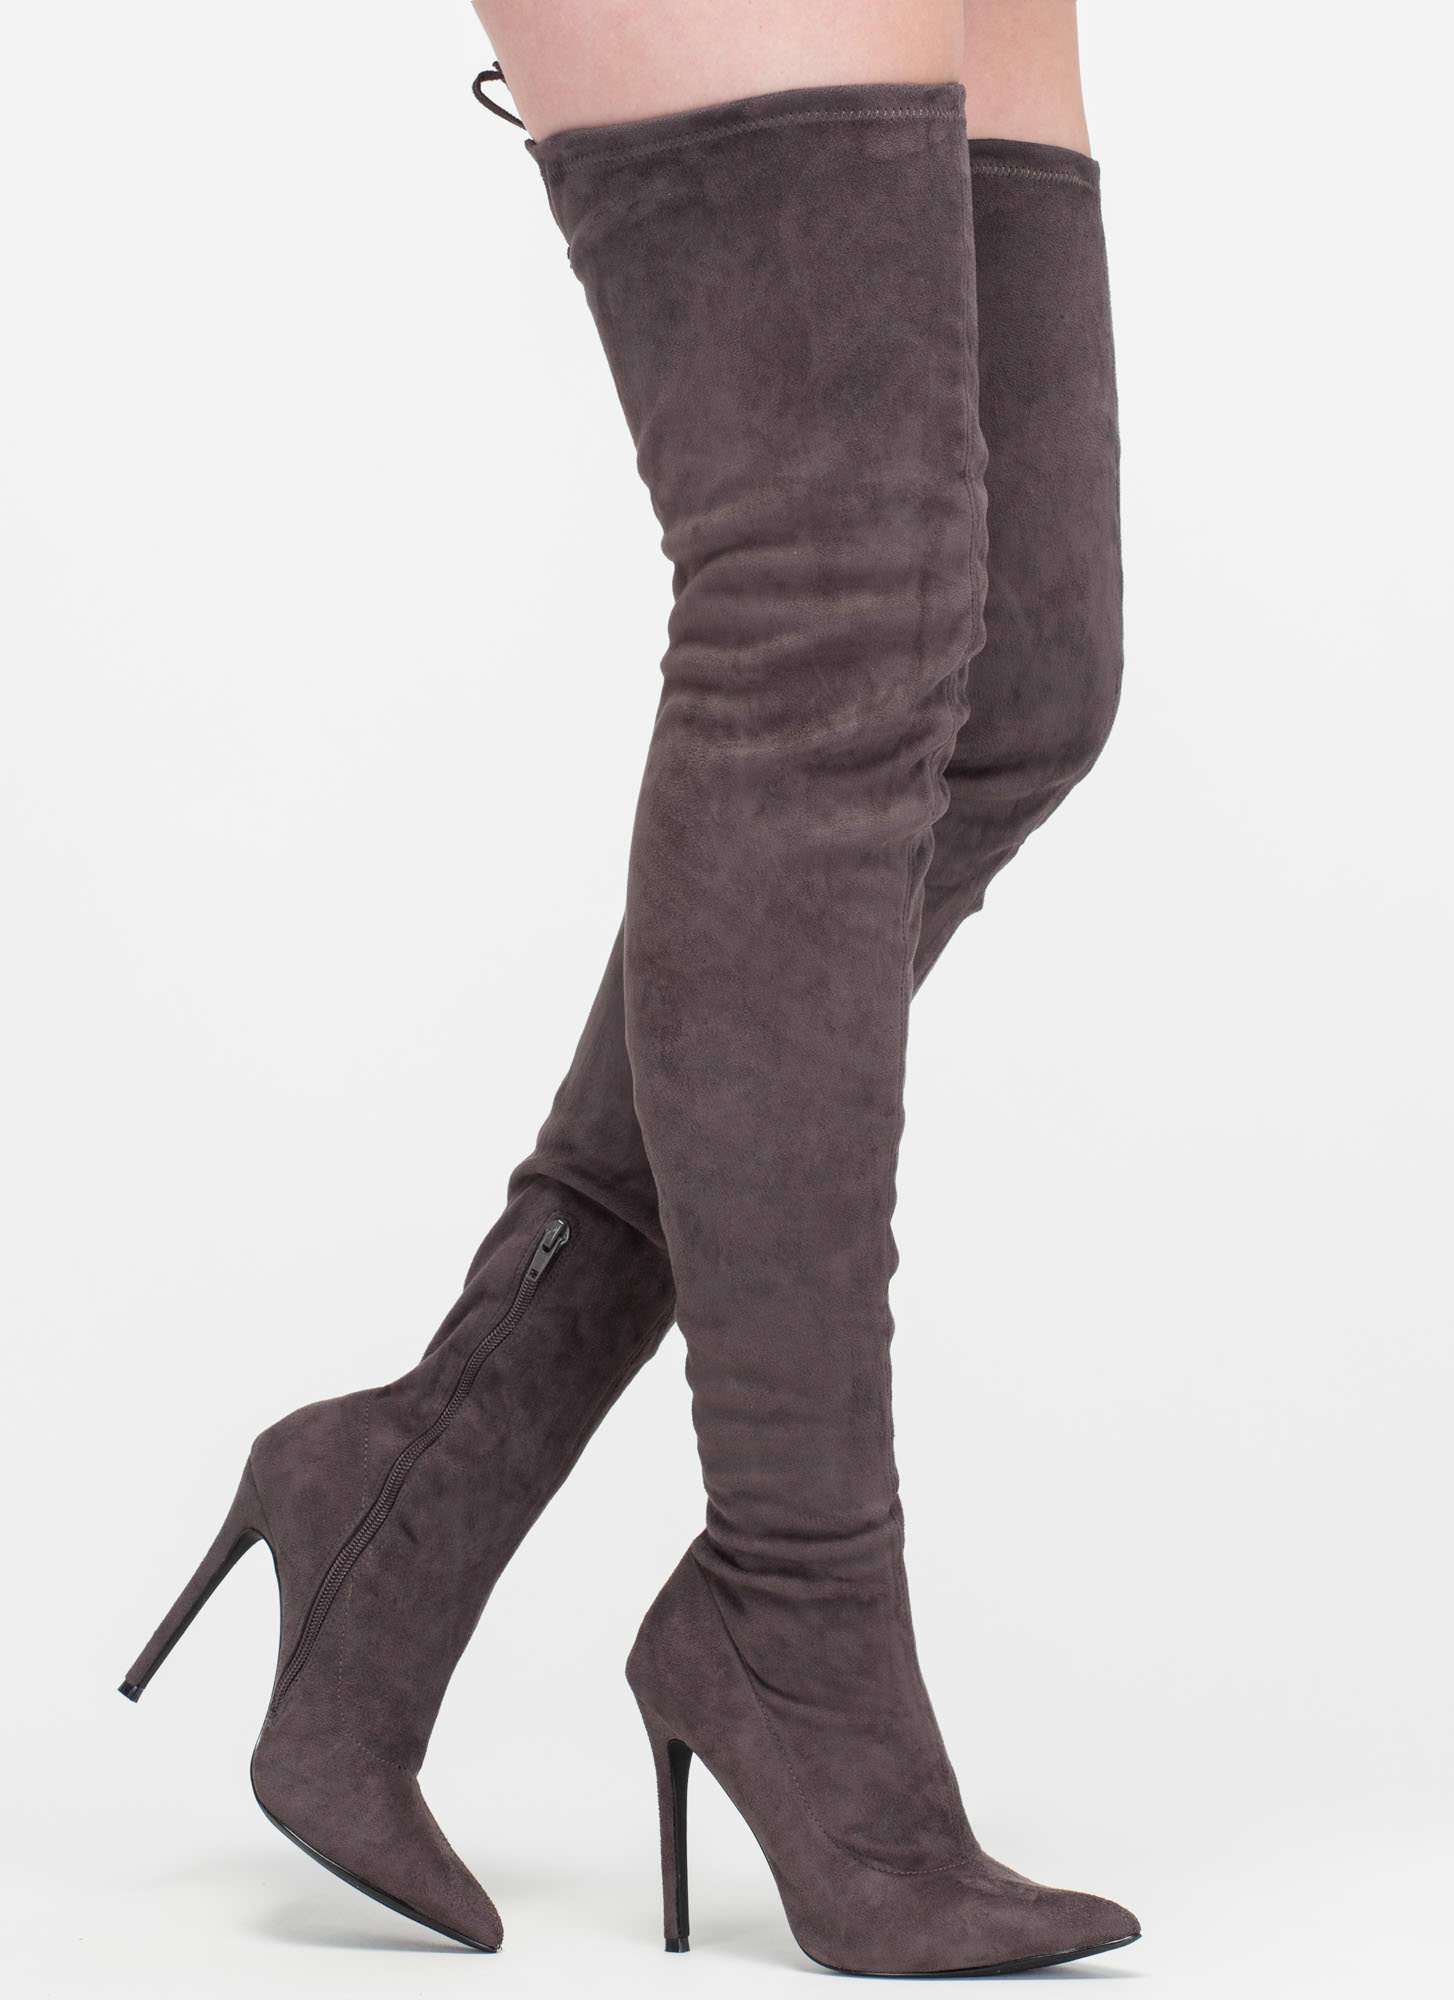 crush faux suede thigh high boots olive maroon black